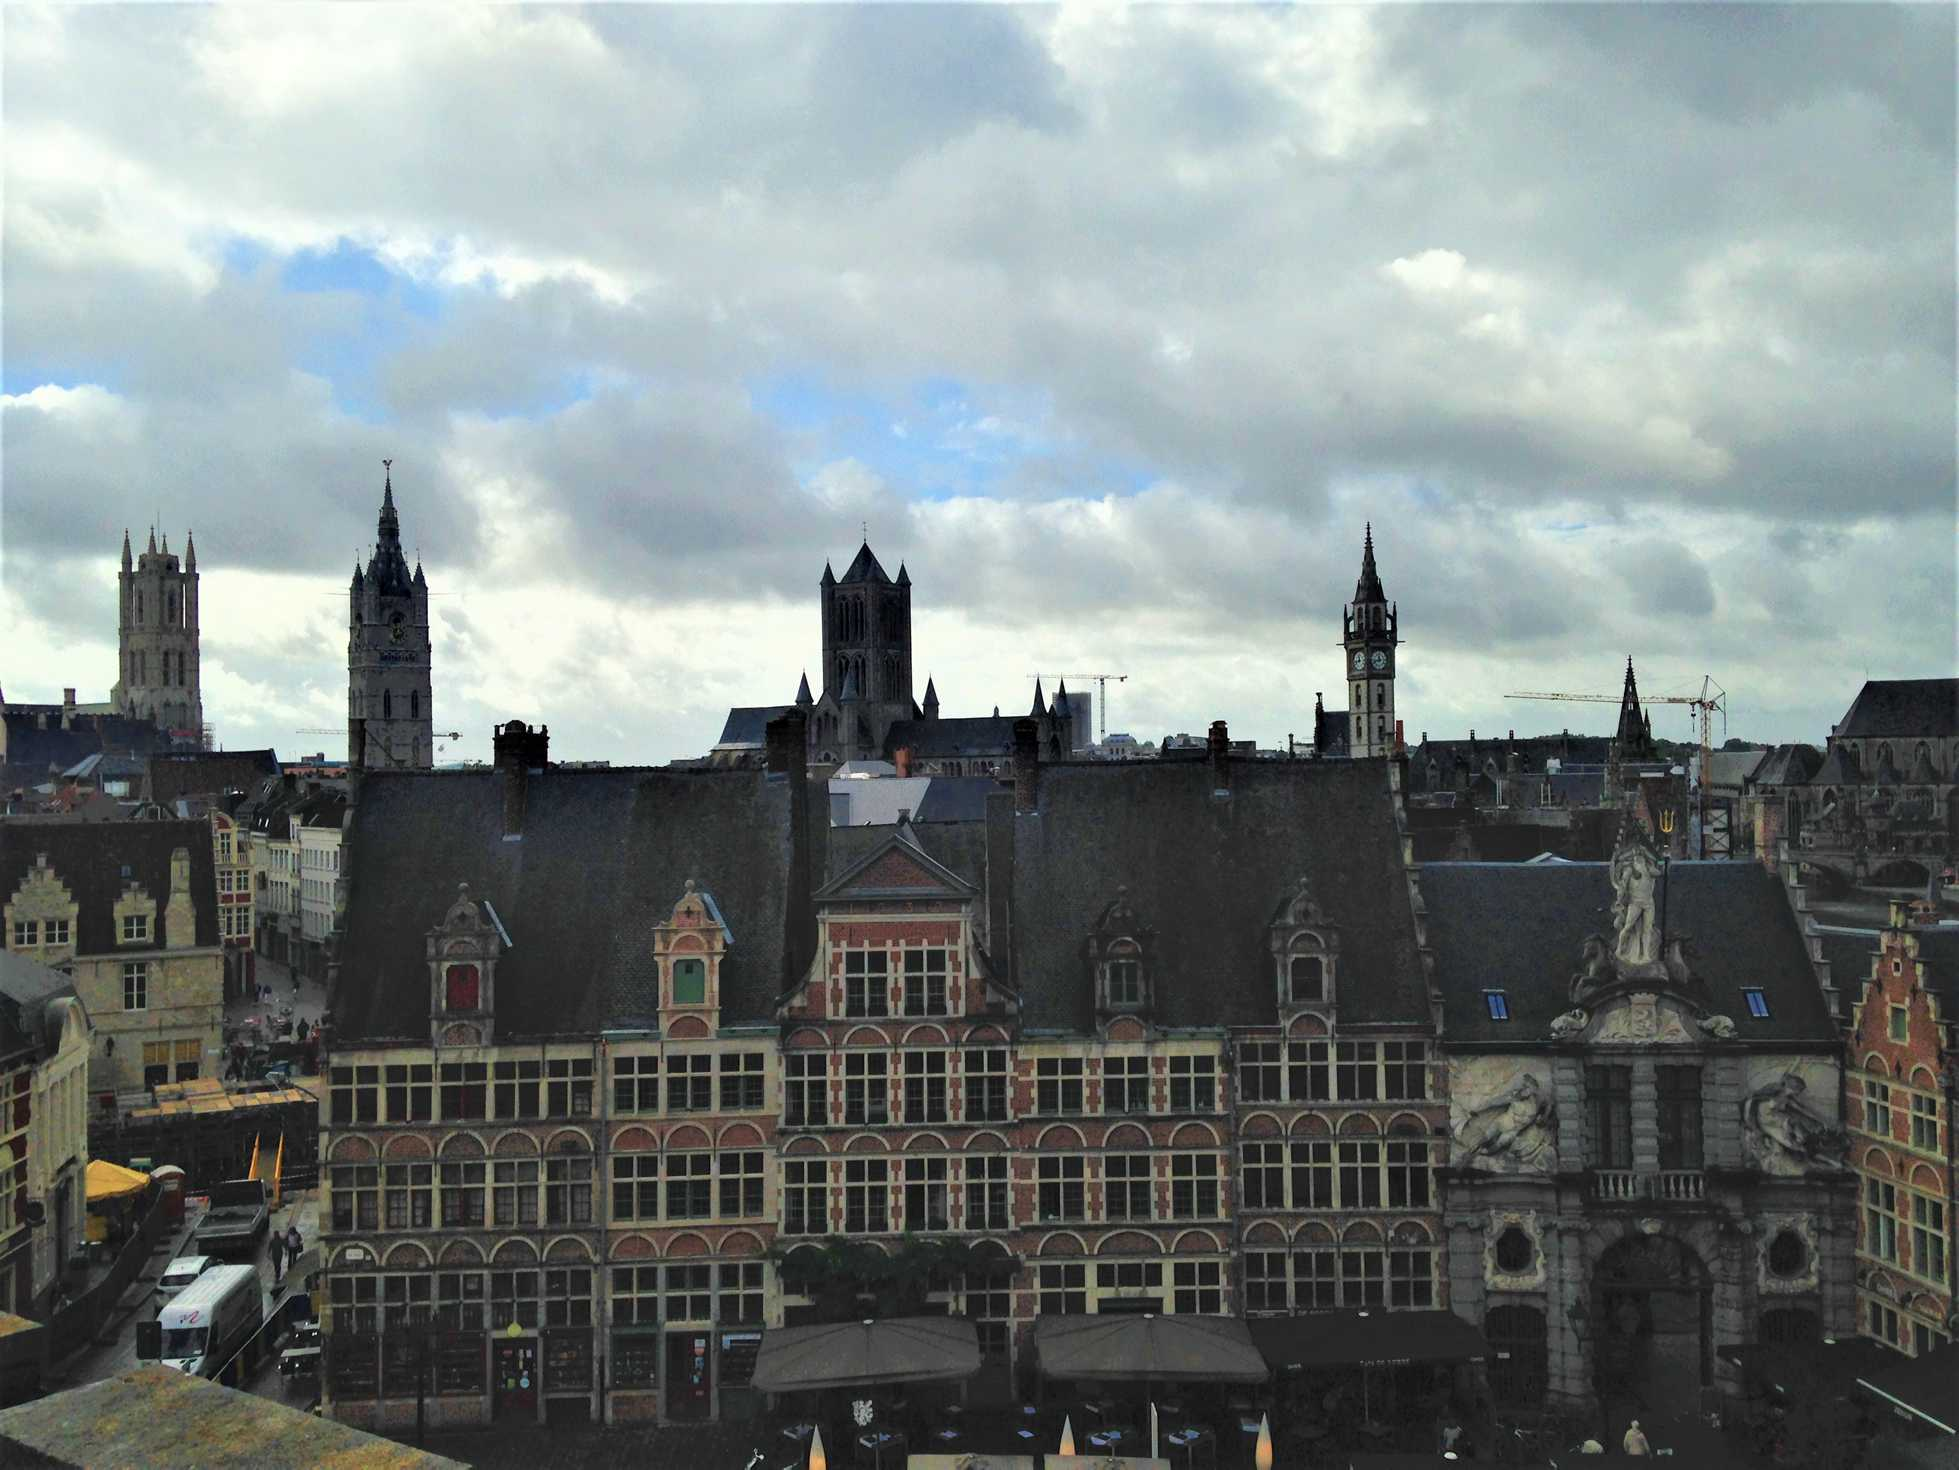 A picture of a square in Ghent, Belgium with the four towers of Ghent in the background.